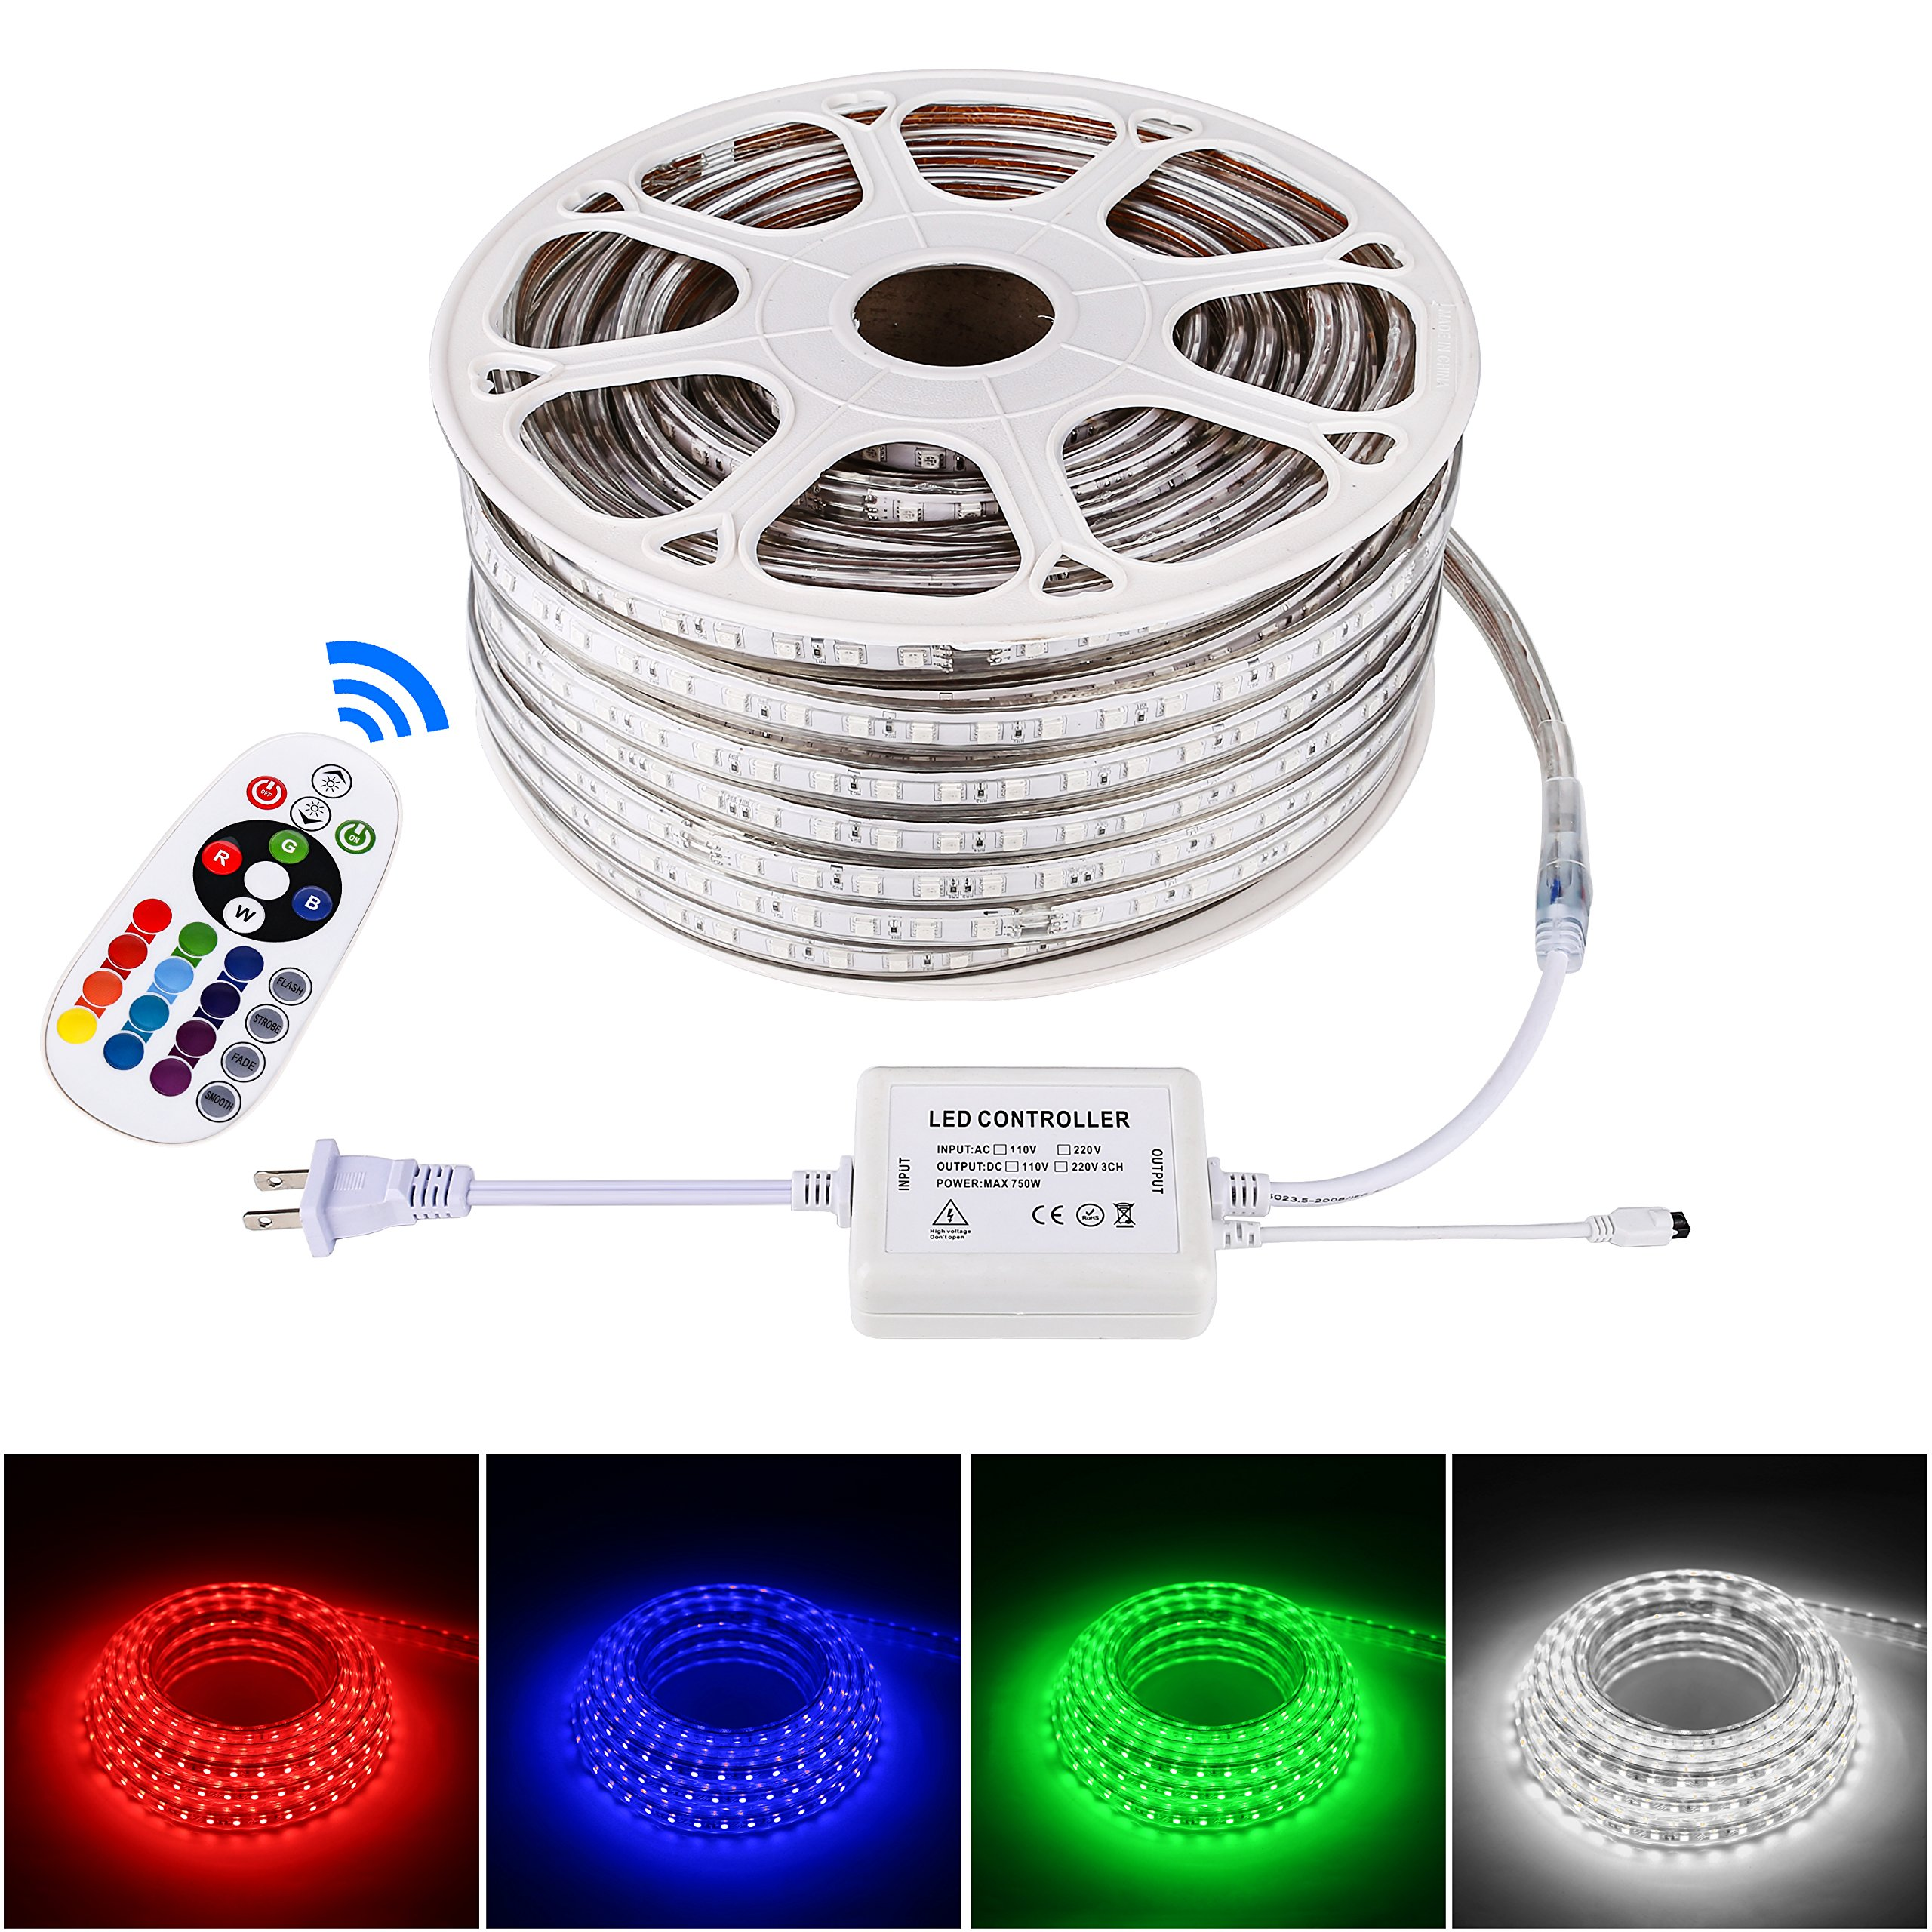 Brillihood Flexible LED RGB Neon Light strip, Multi Color Changing SMD 5050 LEDs, 110-120V AC, Dimmable Rope Light, IP65 Waterproof, Accessories Included, Christmas Holiday Decoration (50m/164ft)